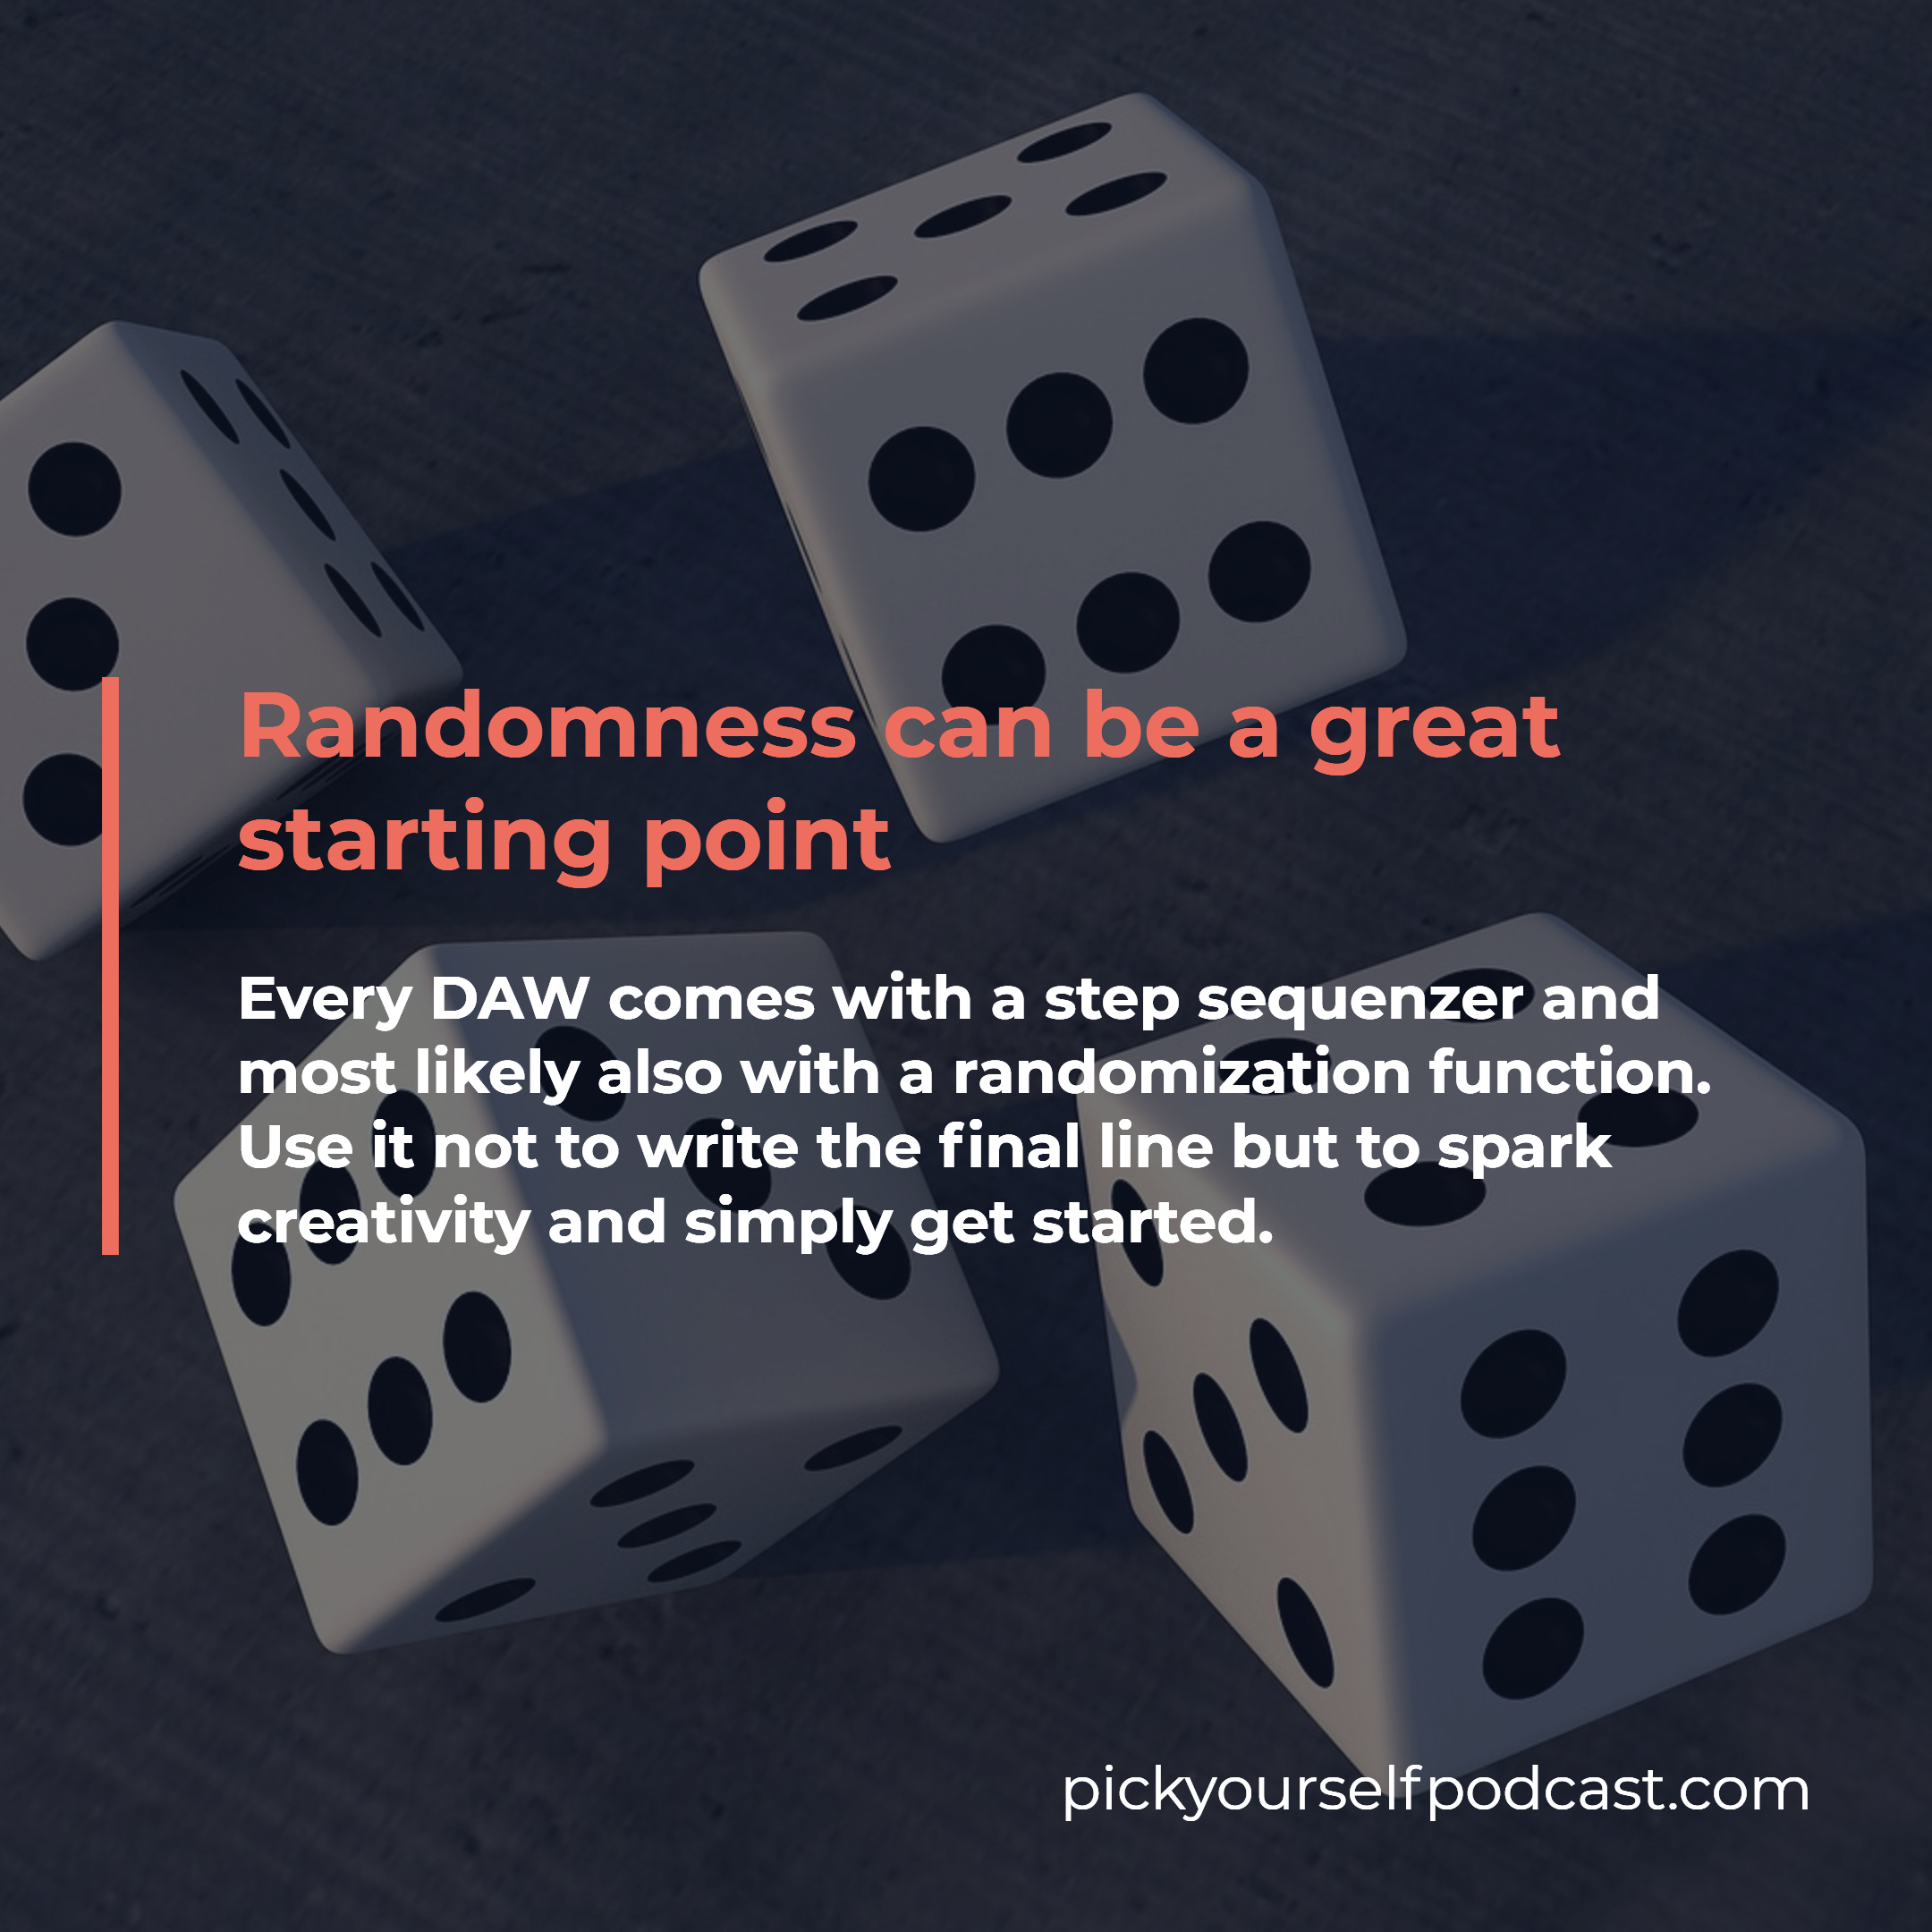 Randomness can be a great starting point